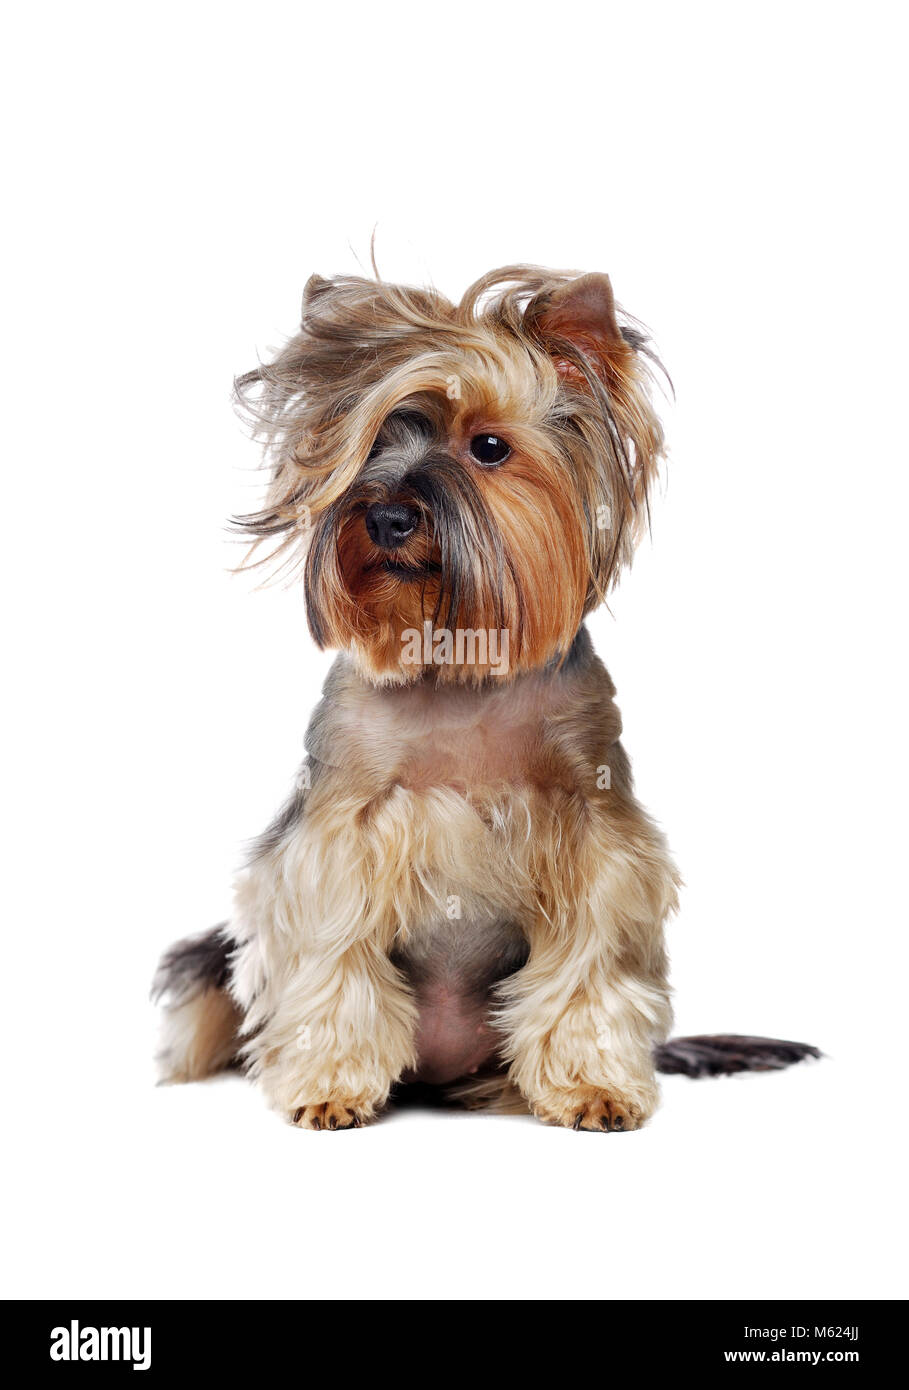 Yorkshire Terrier with wavy hairstyle isolated over white background - Stock Image